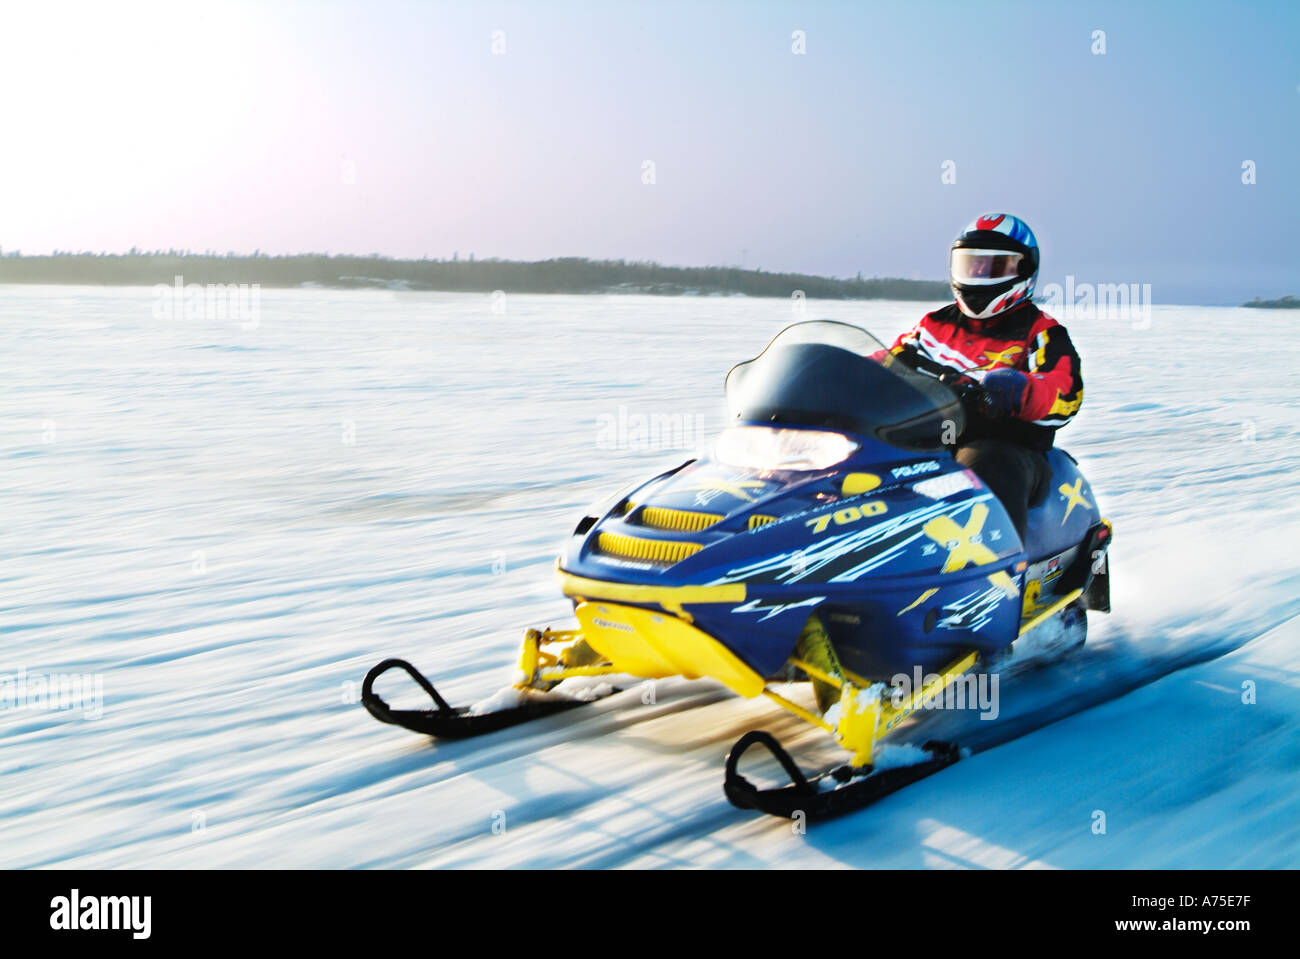 Snowmobiling in Minnesota - Stock Image